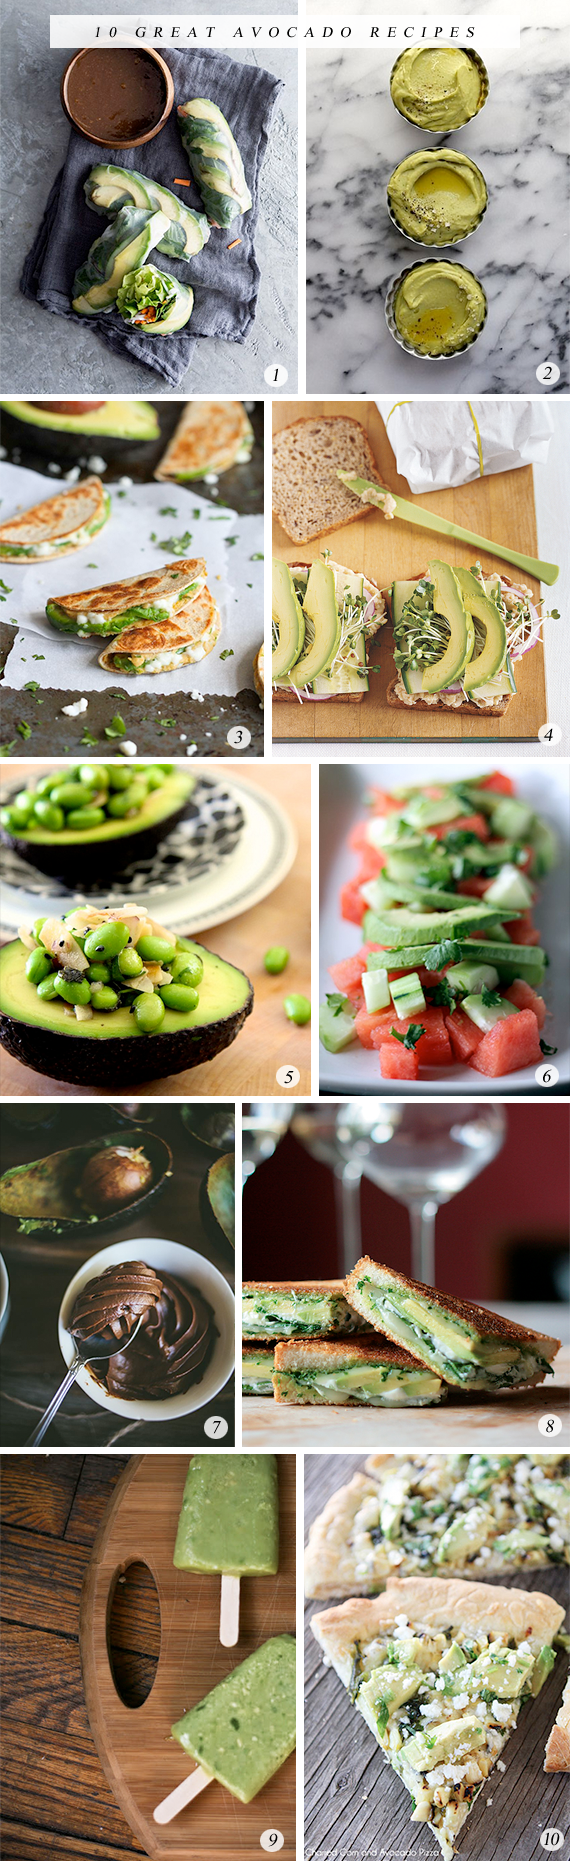 10 Great Avocado Recipes // Bubby and Bean